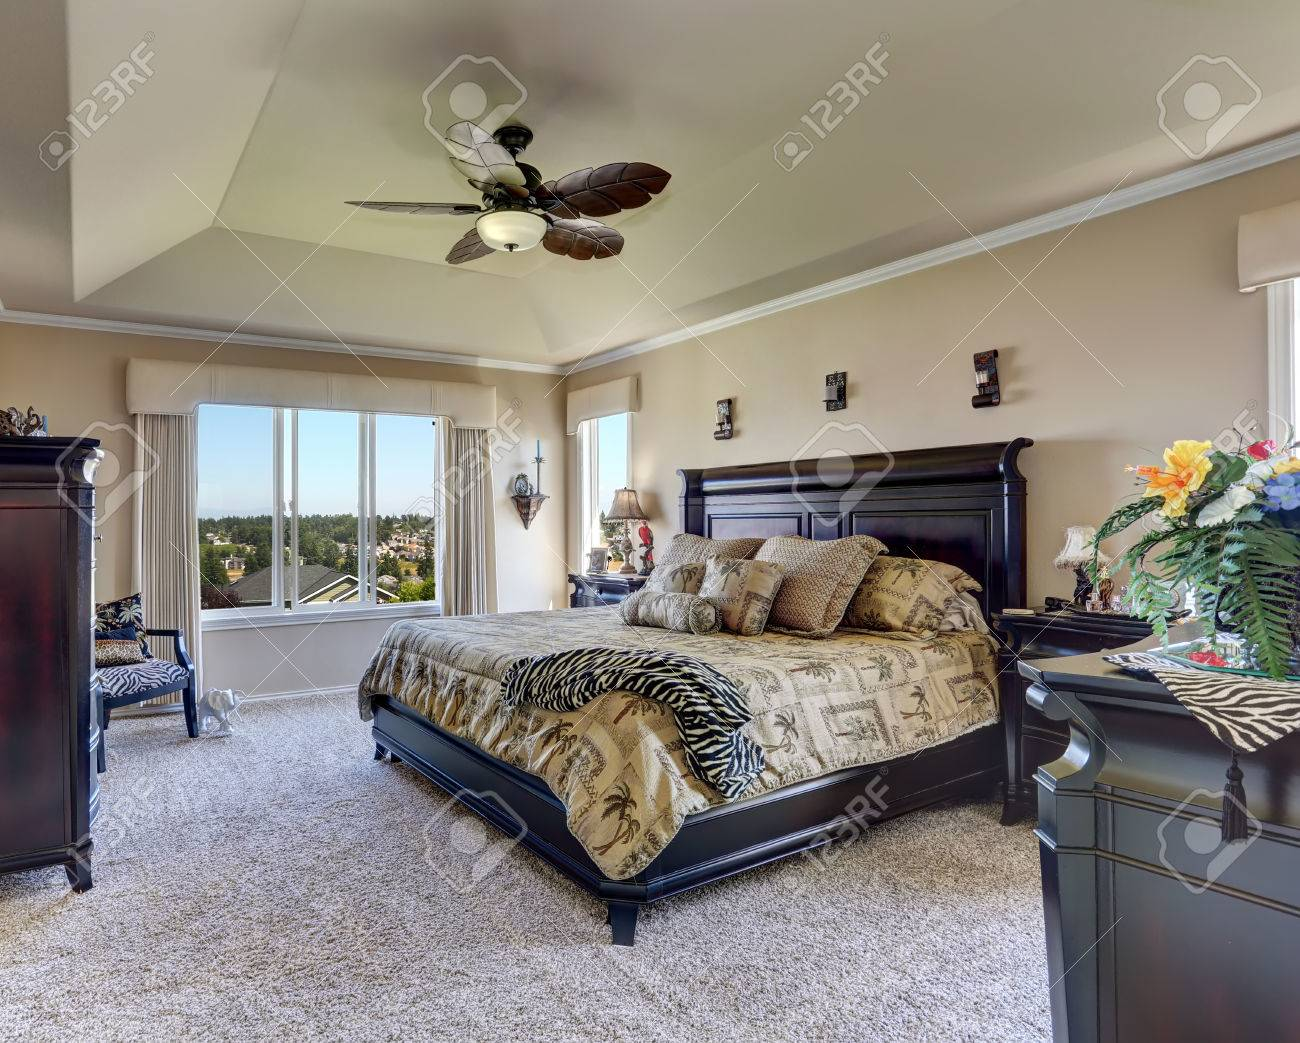 Luxury Interior Of Master Bedroom With Black Furniture. King.. Stock ...